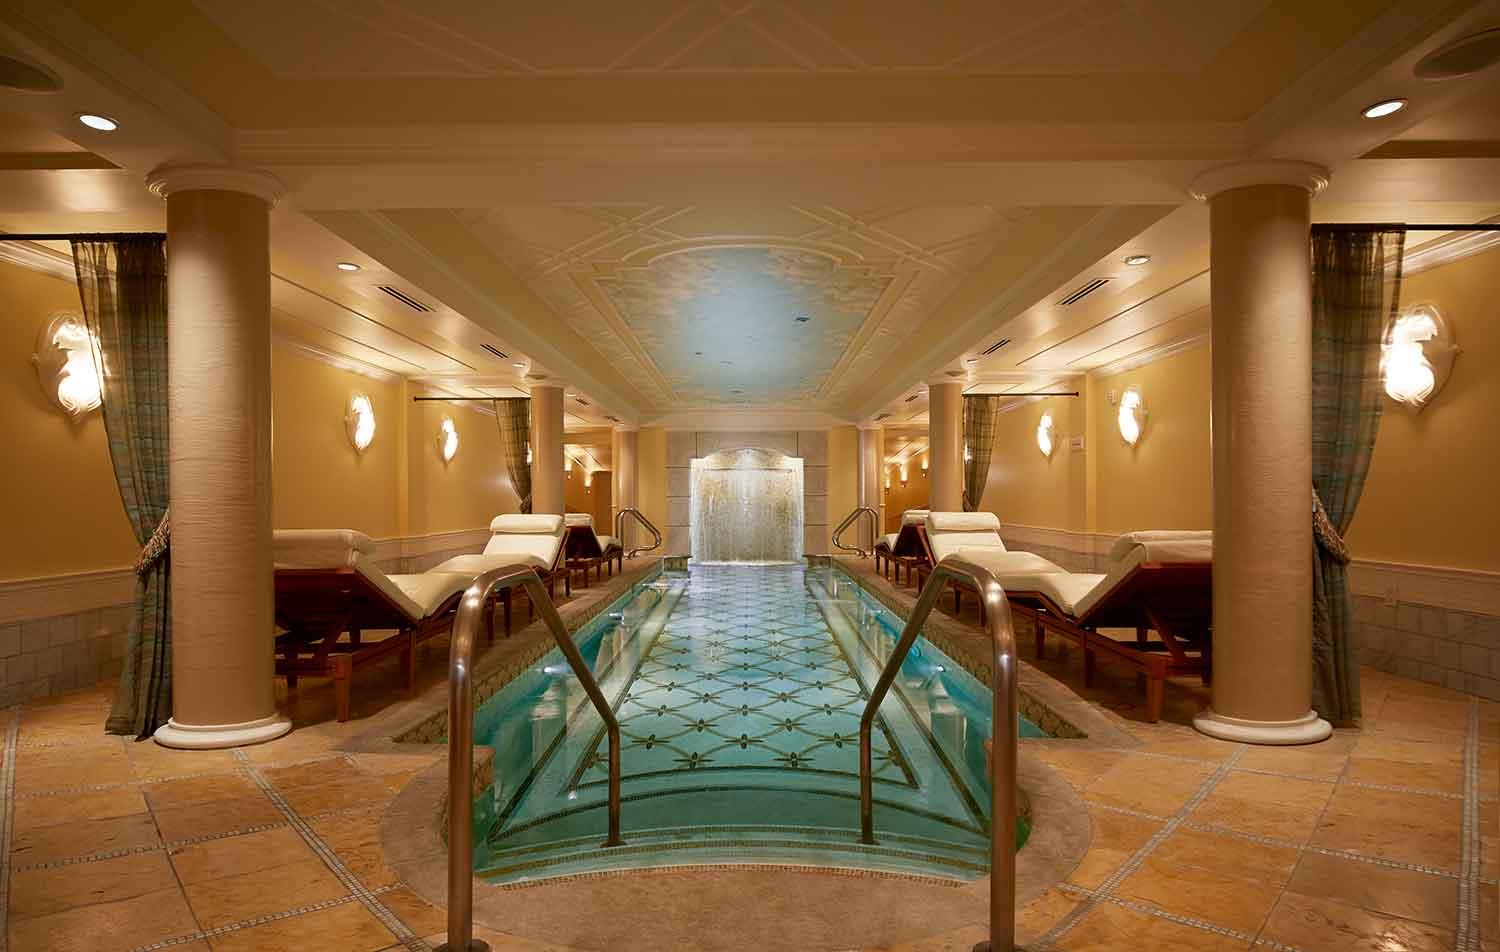 Relaxation pool with eight-foot waterfall at Kohler Waters Spa, Destination Kohler.